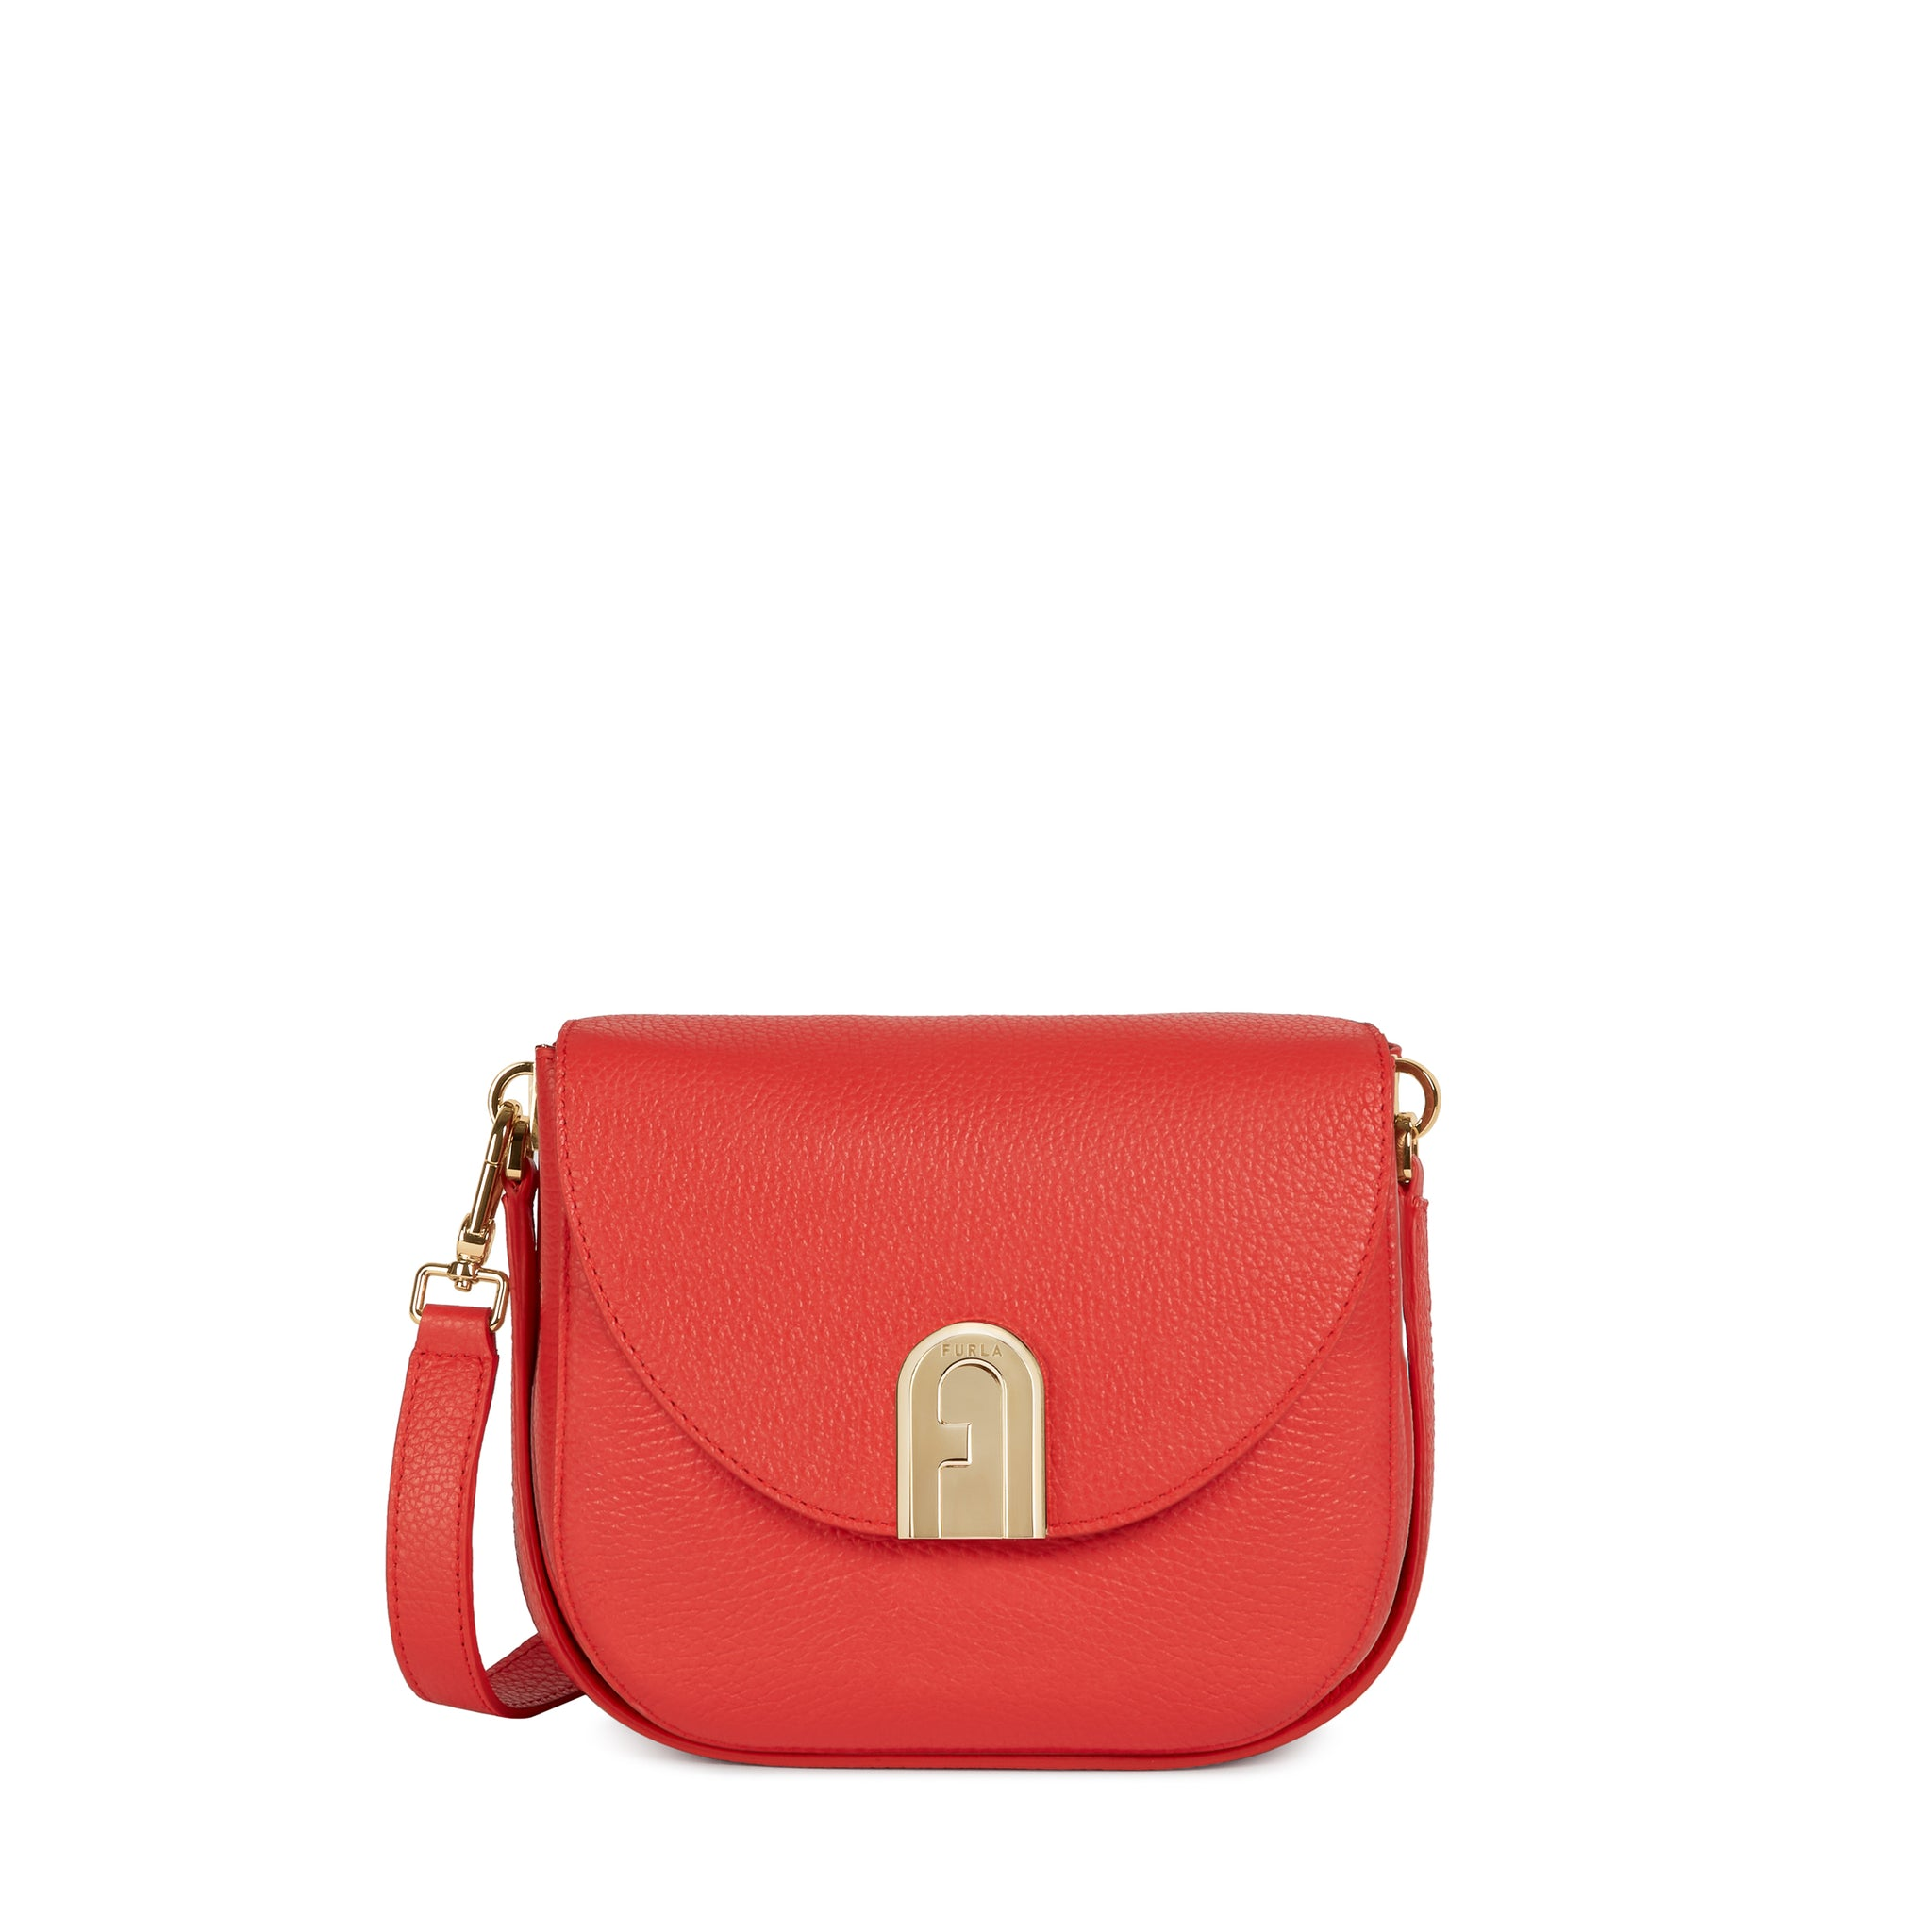 BORSA FURLA SLEEK MINI CROSSBODY - 1057270 | Fronte | SALOTTO SHOP